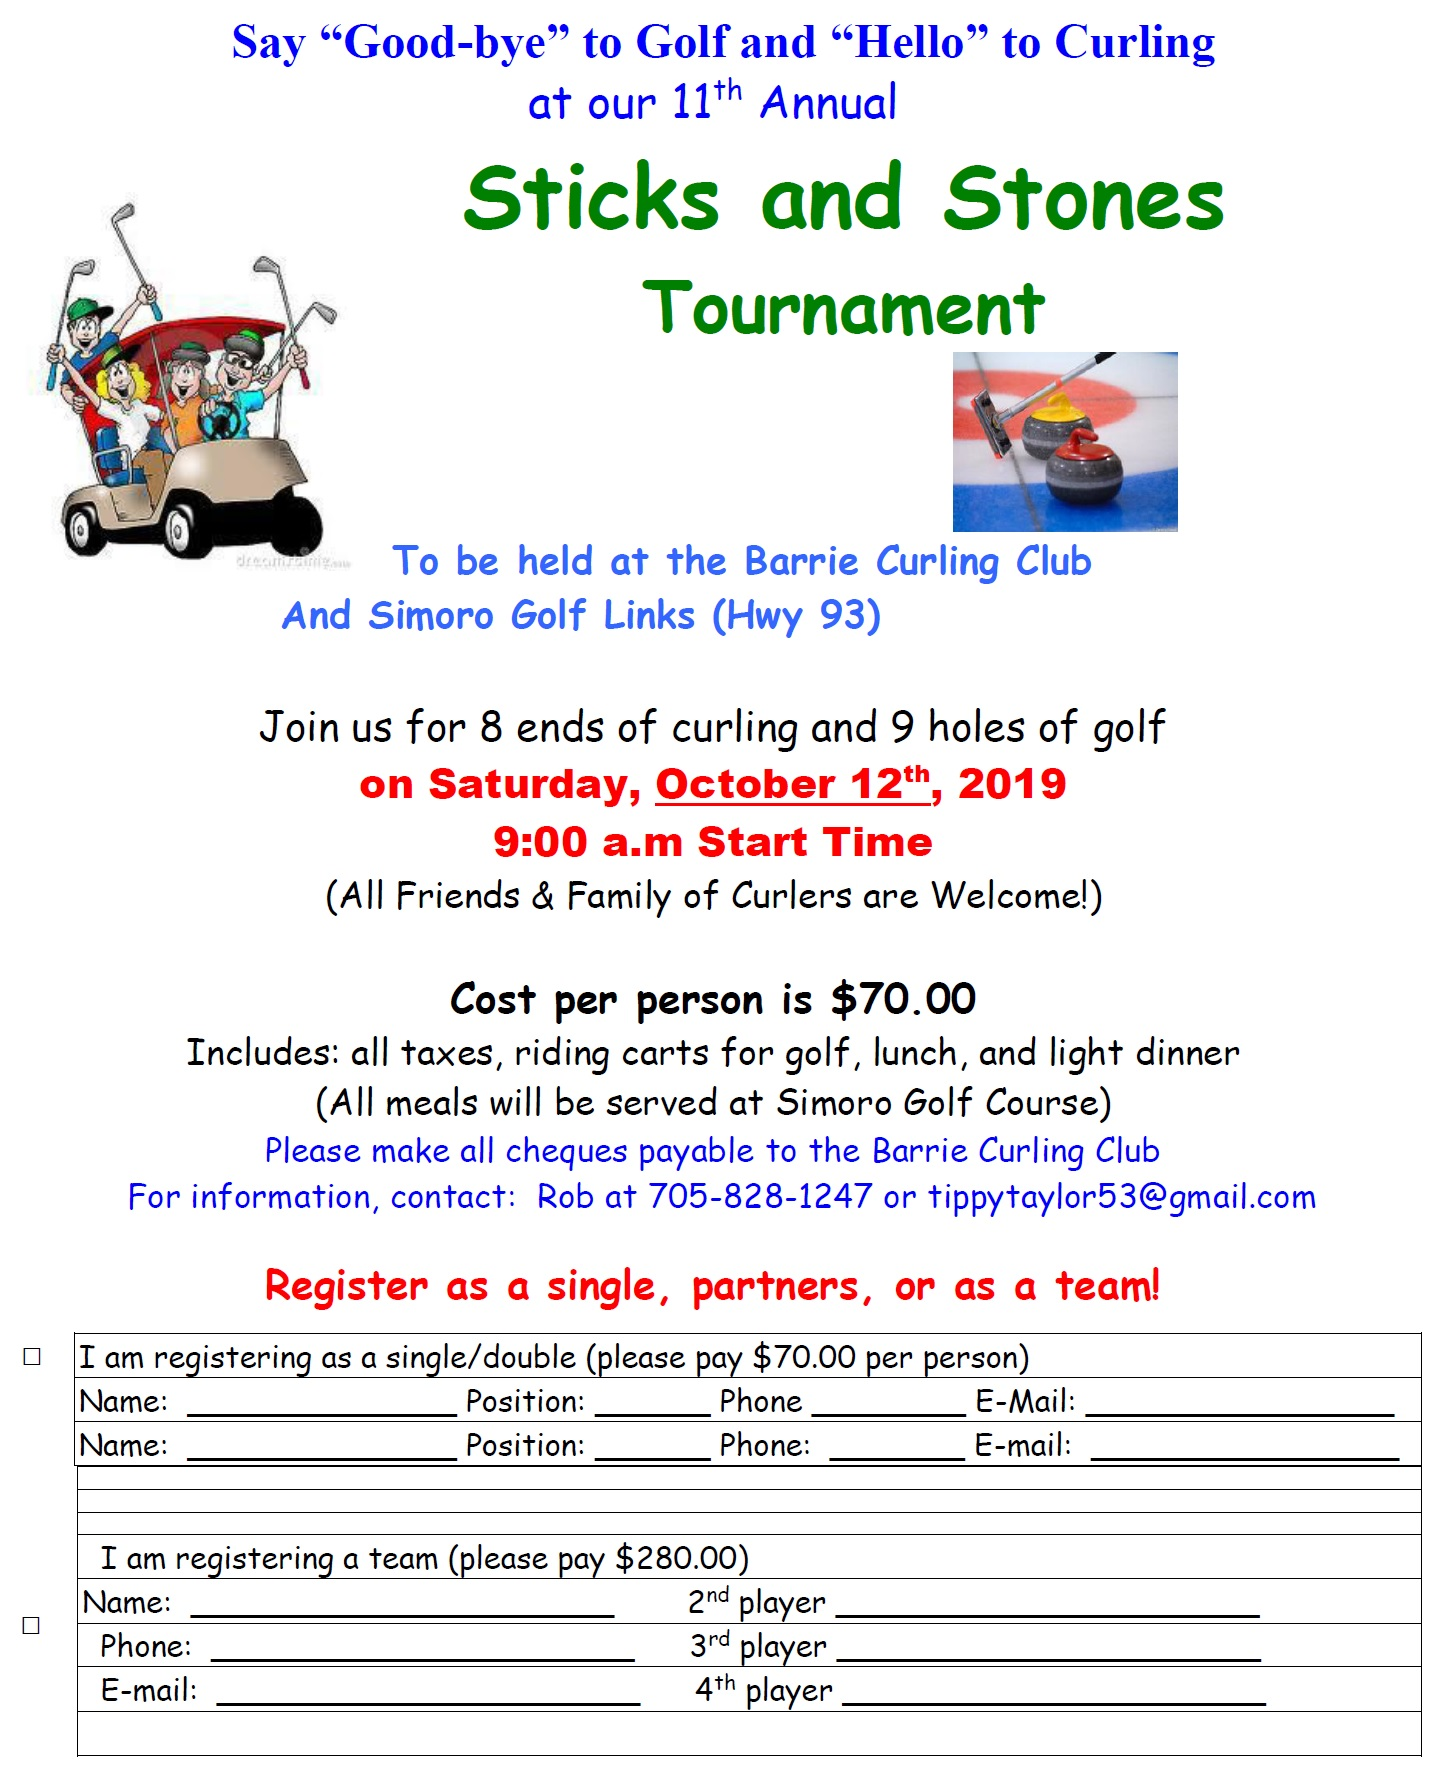 SticksandStones2019Flyer